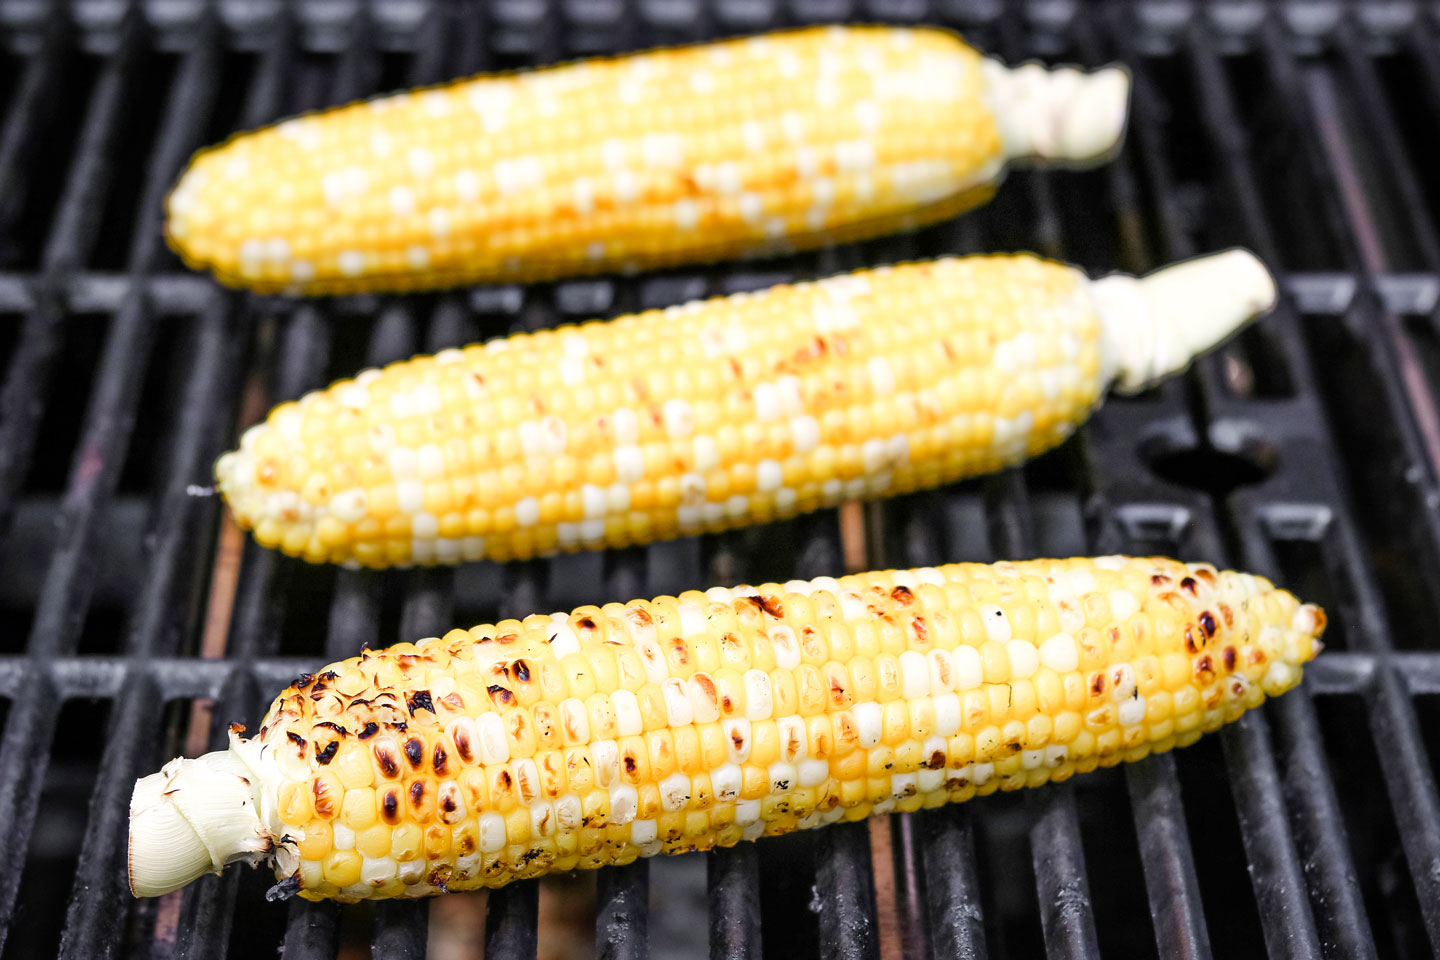 3 ears of corn on the cob on the grill that are almost done cooking, with brown spots visible.